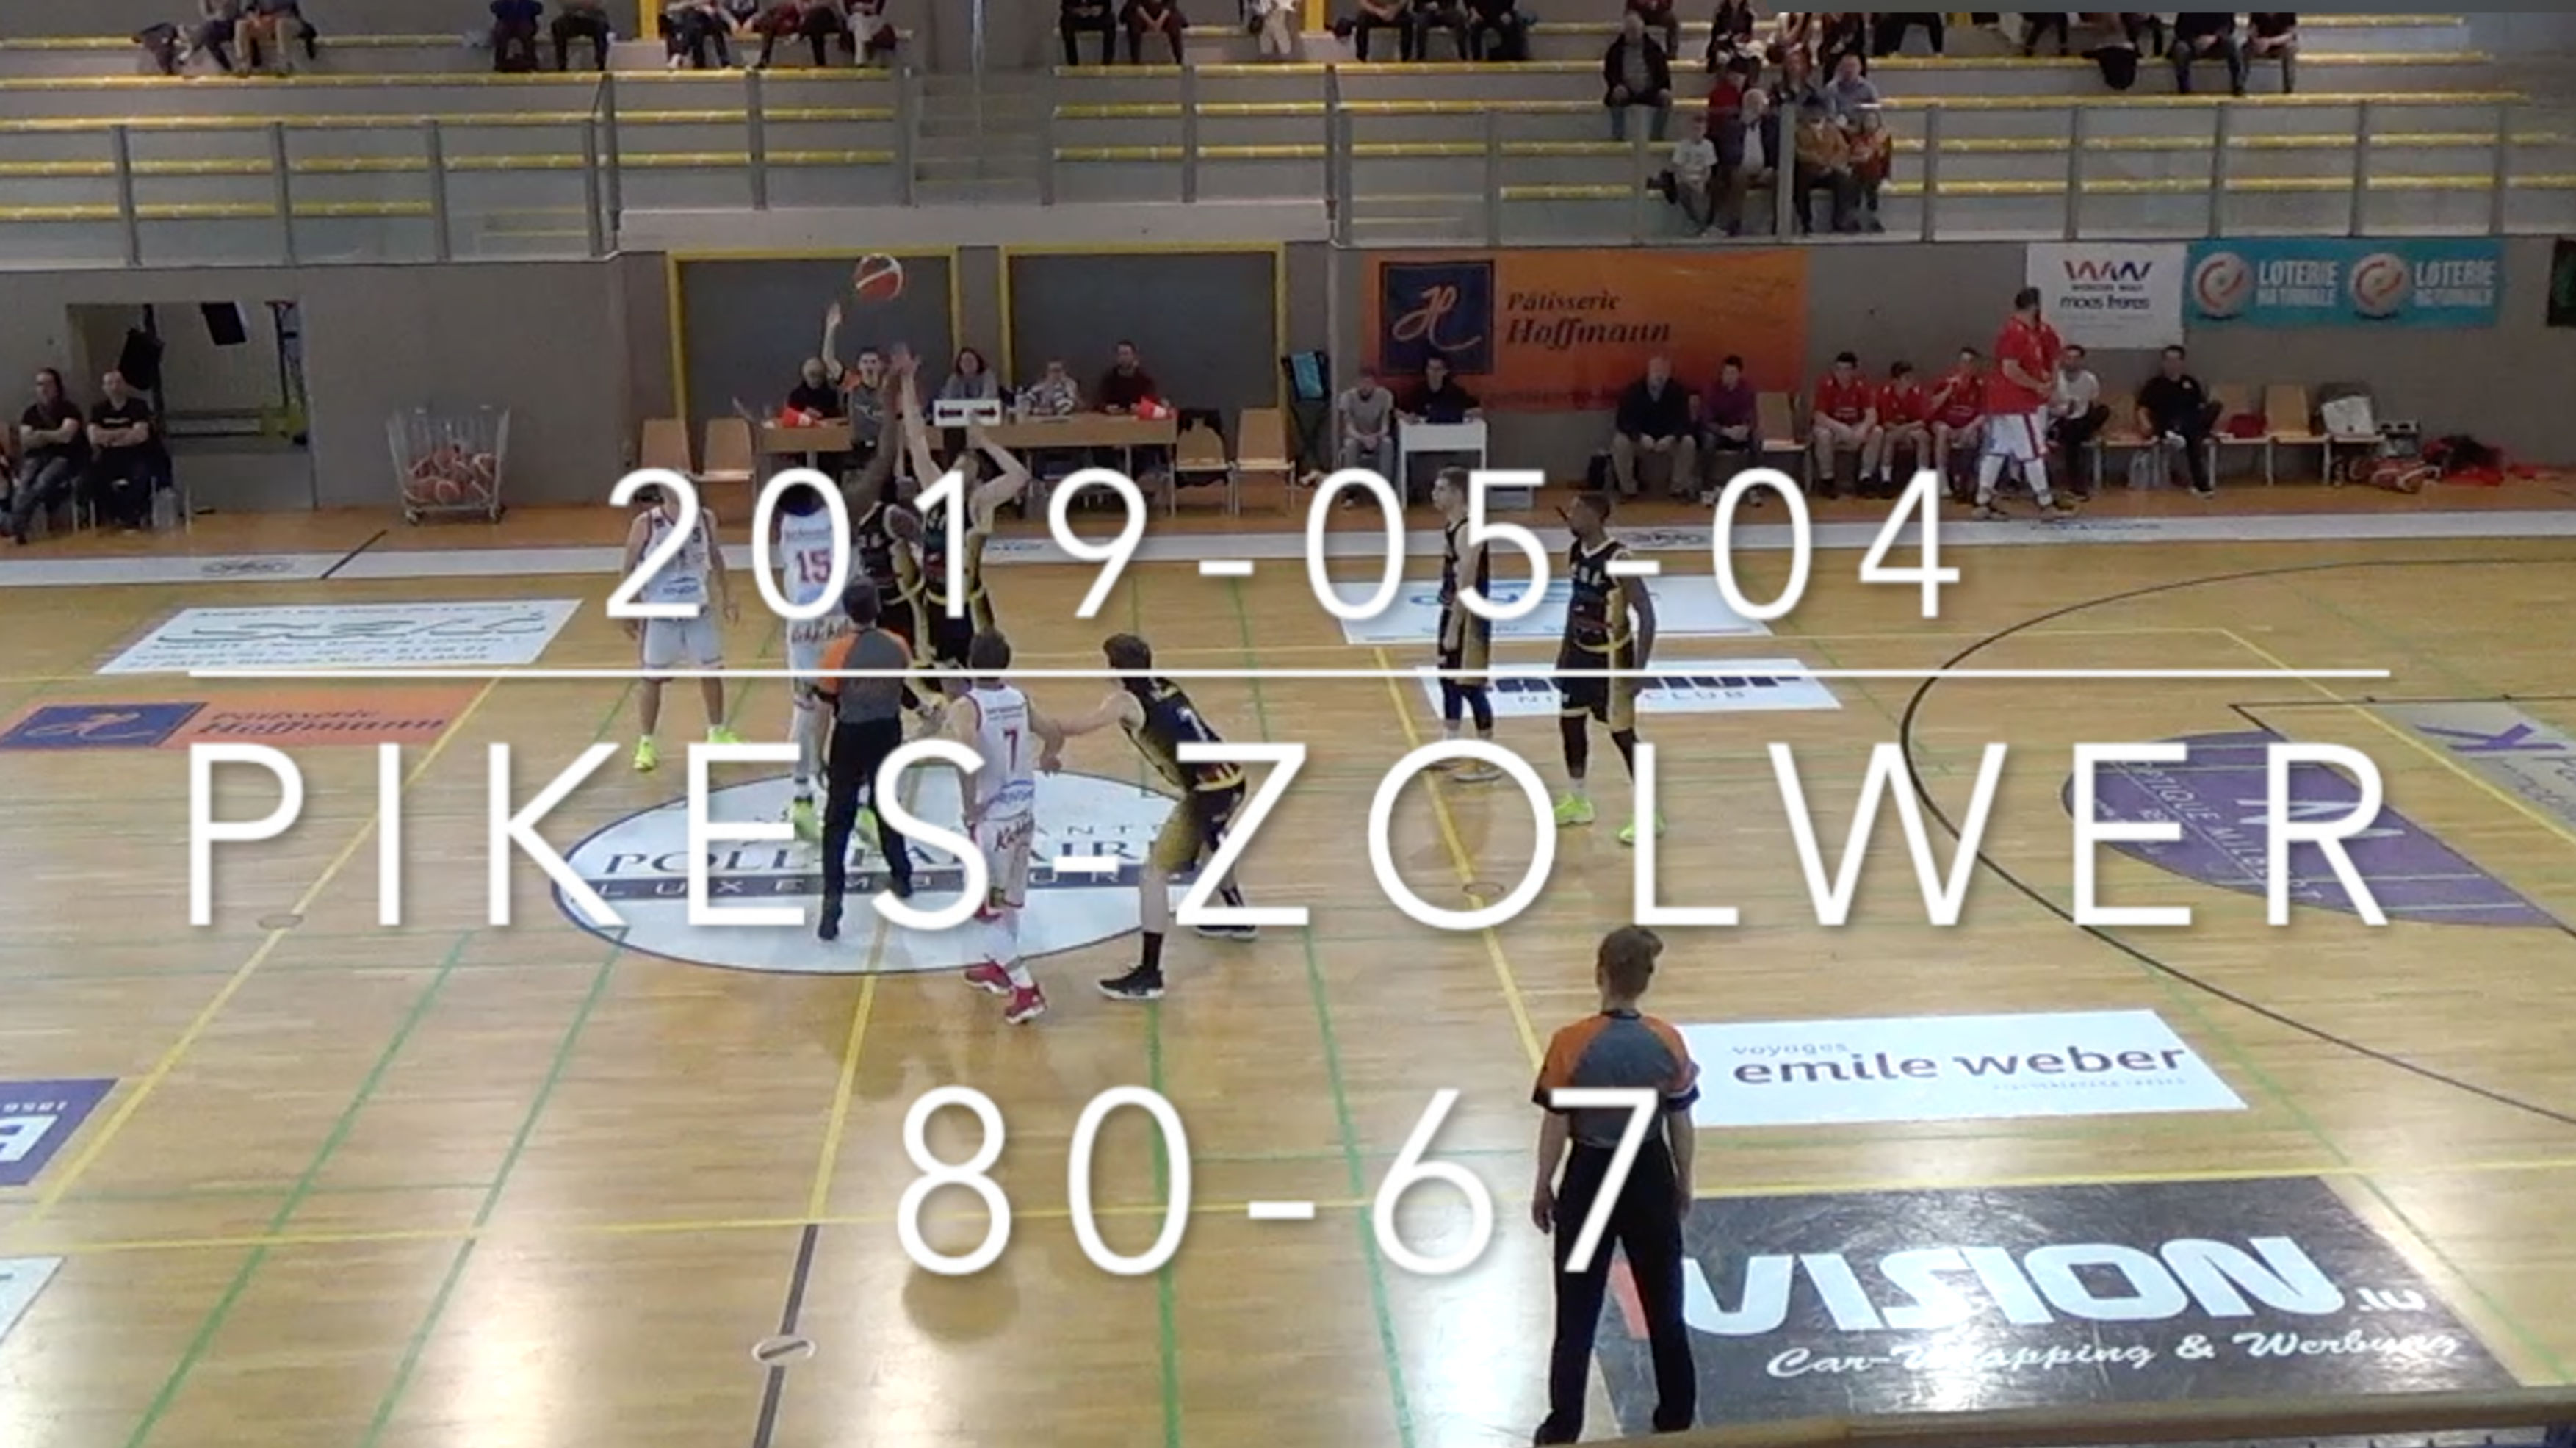 2019-05-04 Pikes highlights (Pikes-Zolwer)